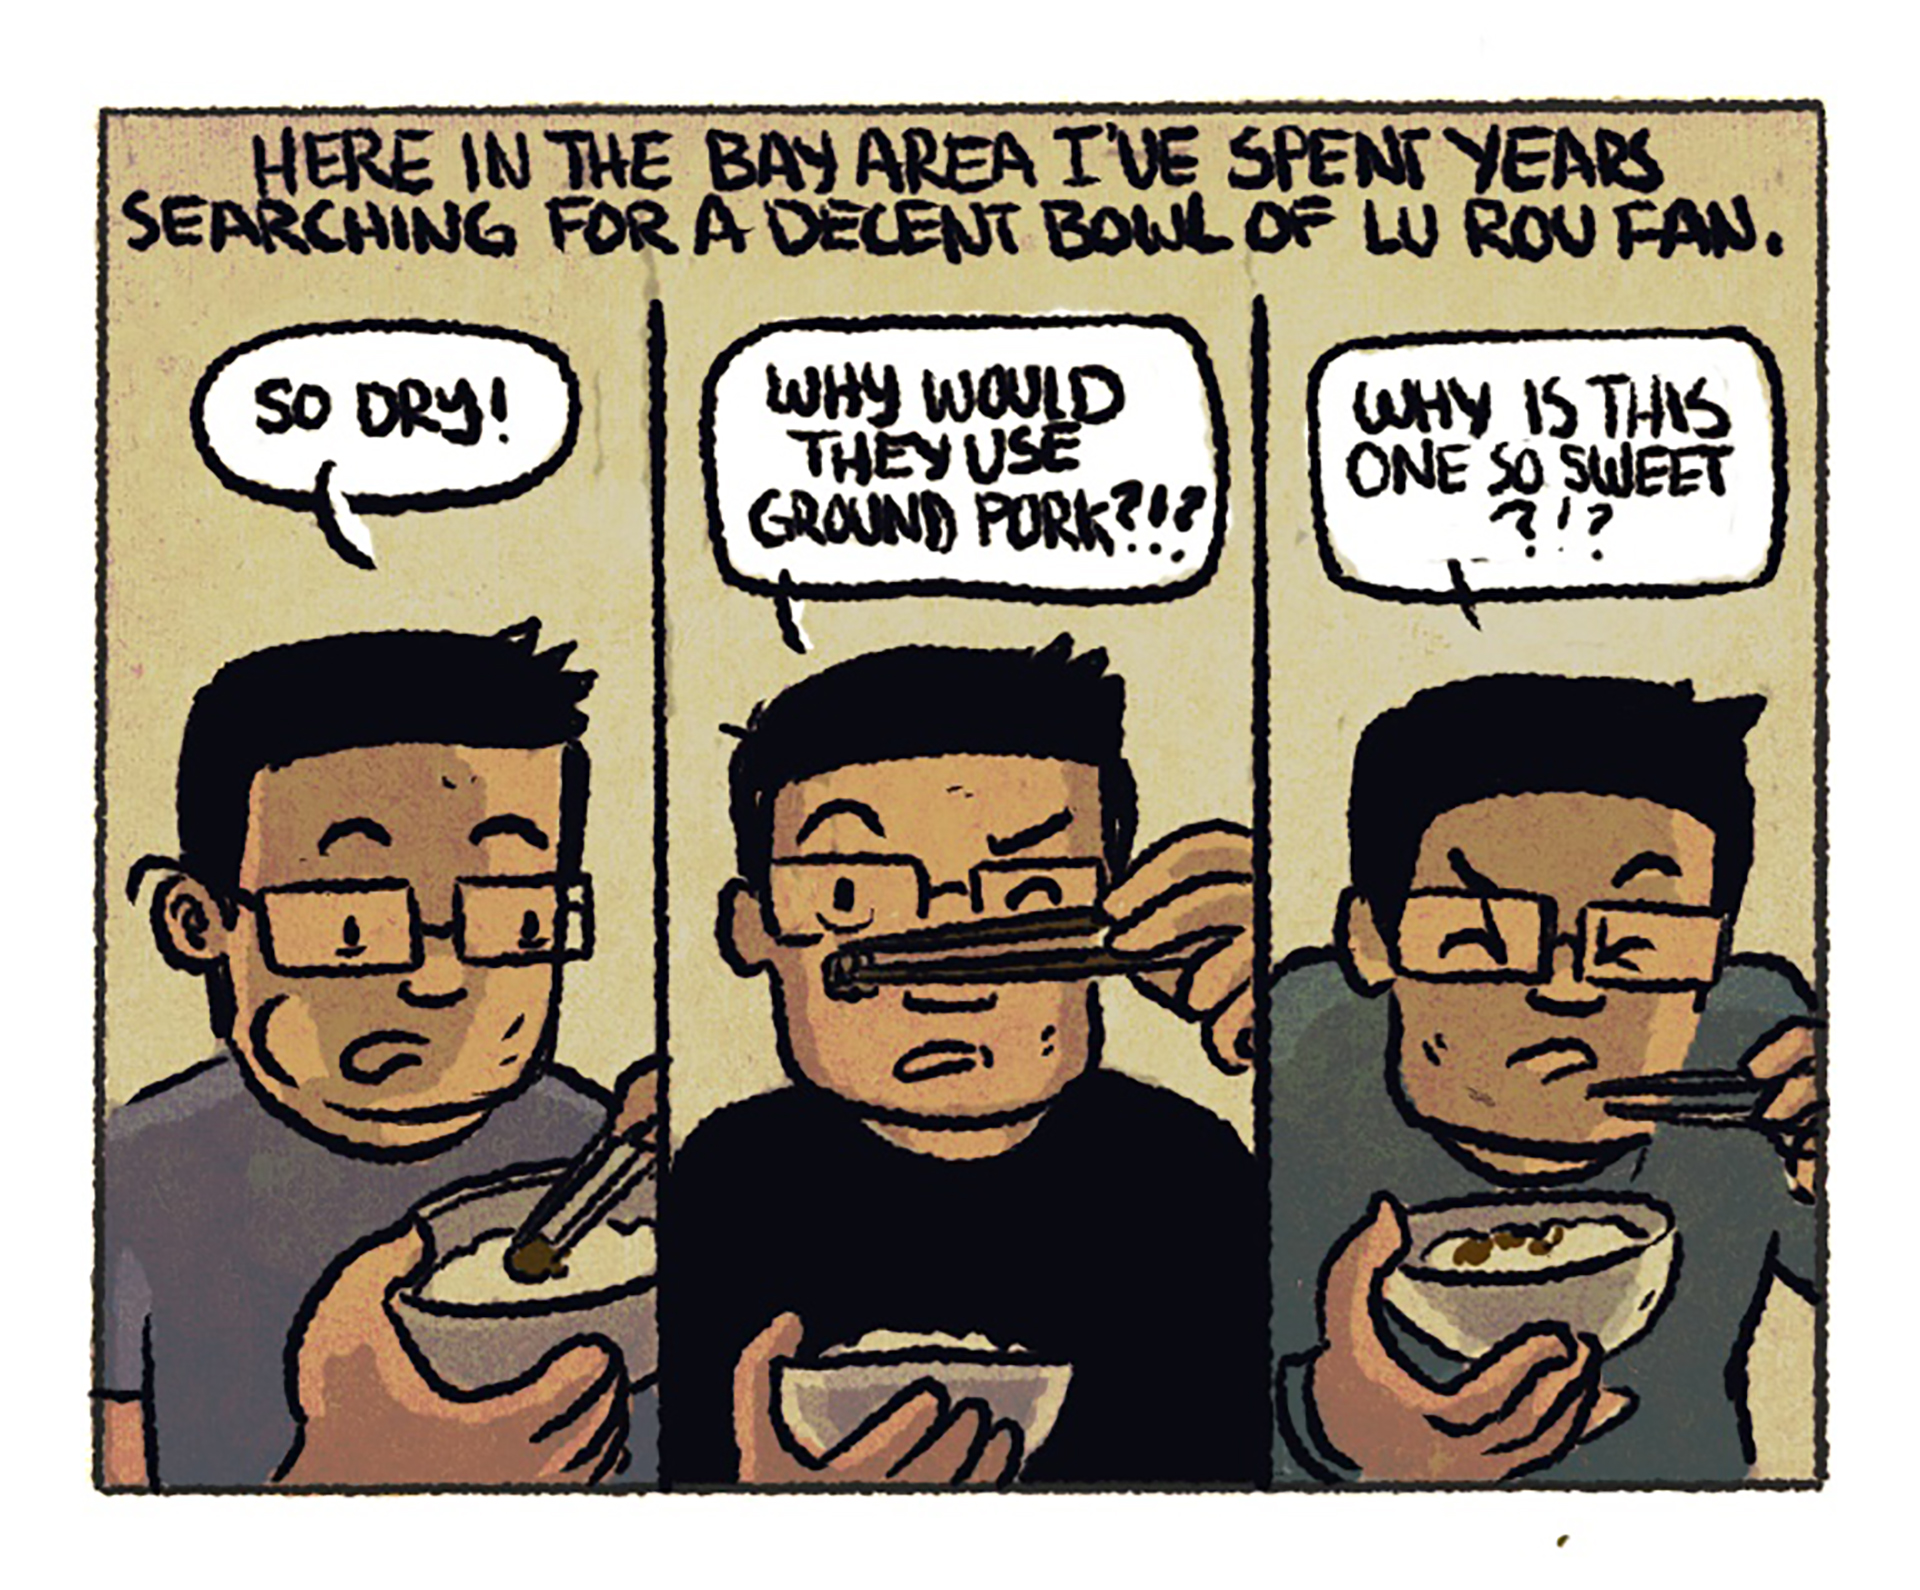 """Three side-by-side panels show Luke tasting different versions of lu rou fan with an irritated expression on his face. The narration reads: """"Here in the Bay Area I've spent years searching for a decent bowl of lu rou fan."""" Speech bubble #1: """"So dry!"""" Speech bubble #2: """"Why would they use ground pork?!?"""" Speech bubble #3: """"Why is this one so sweet?!!"""""""